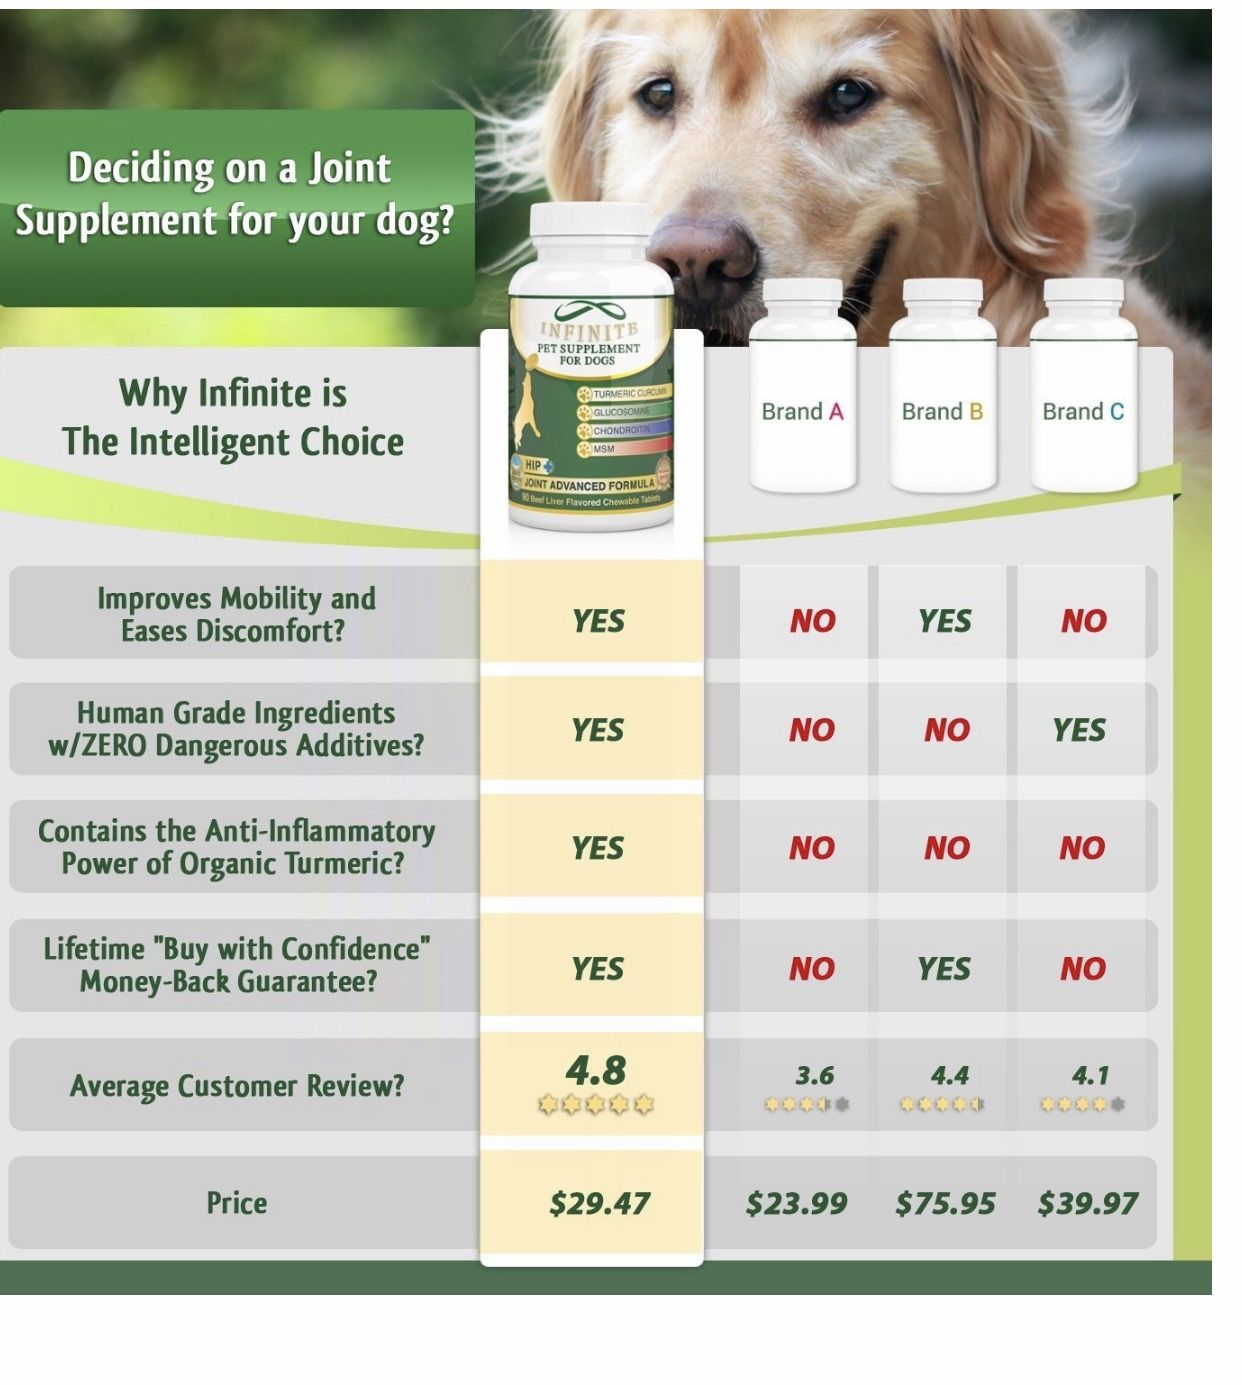 infinite pet supplements all natural hip joint supplement for dogs